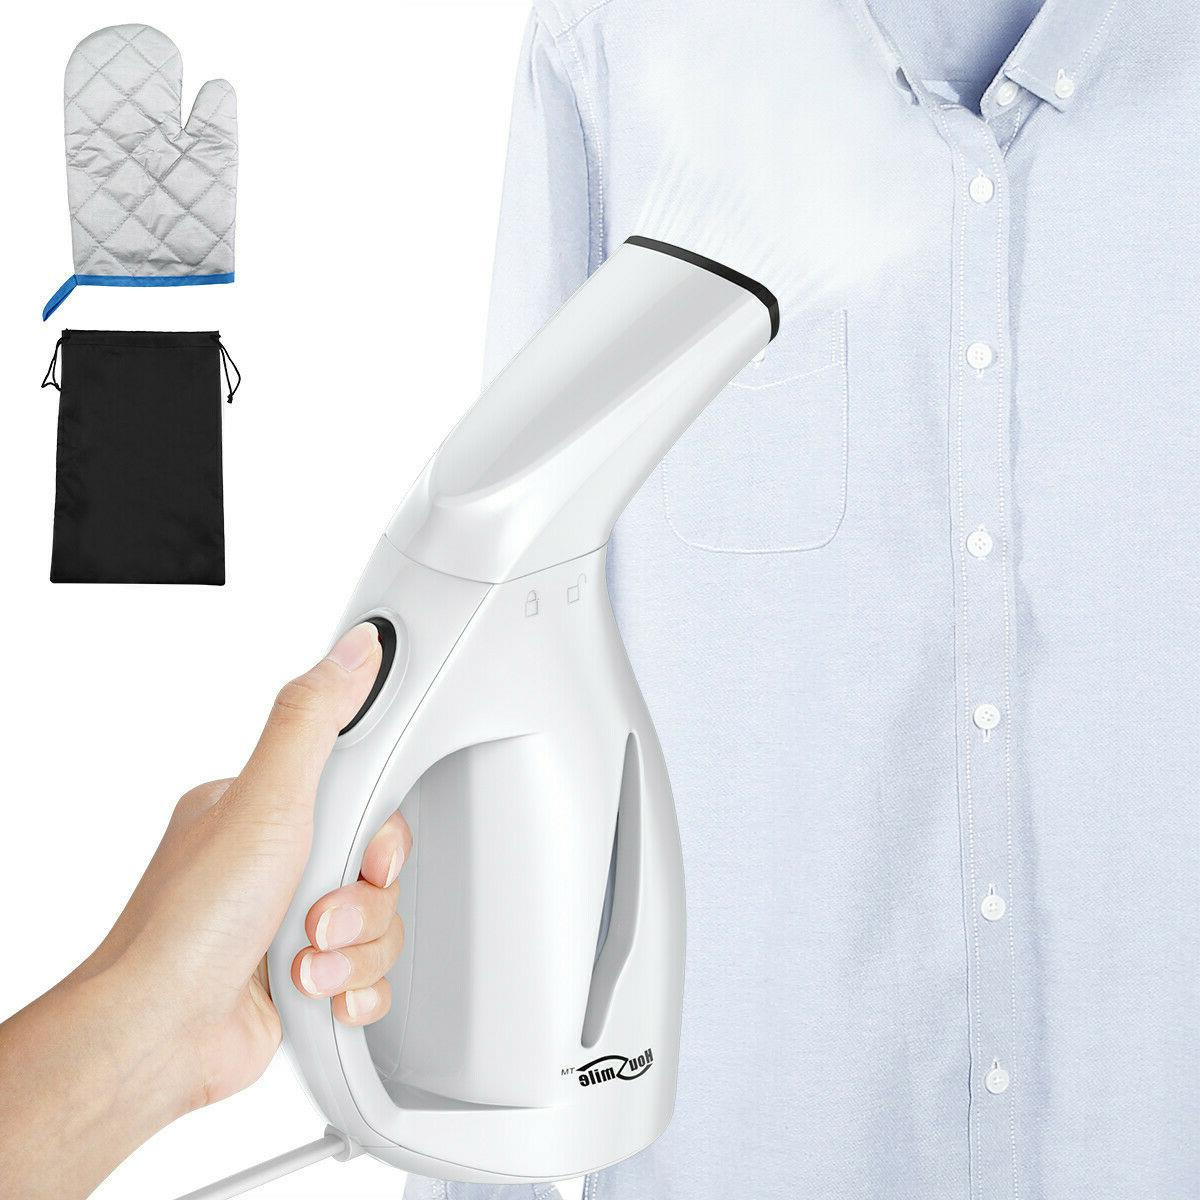 Clothes Garment Steamer Wrinkle Remove Travel Portable Mini Handheld